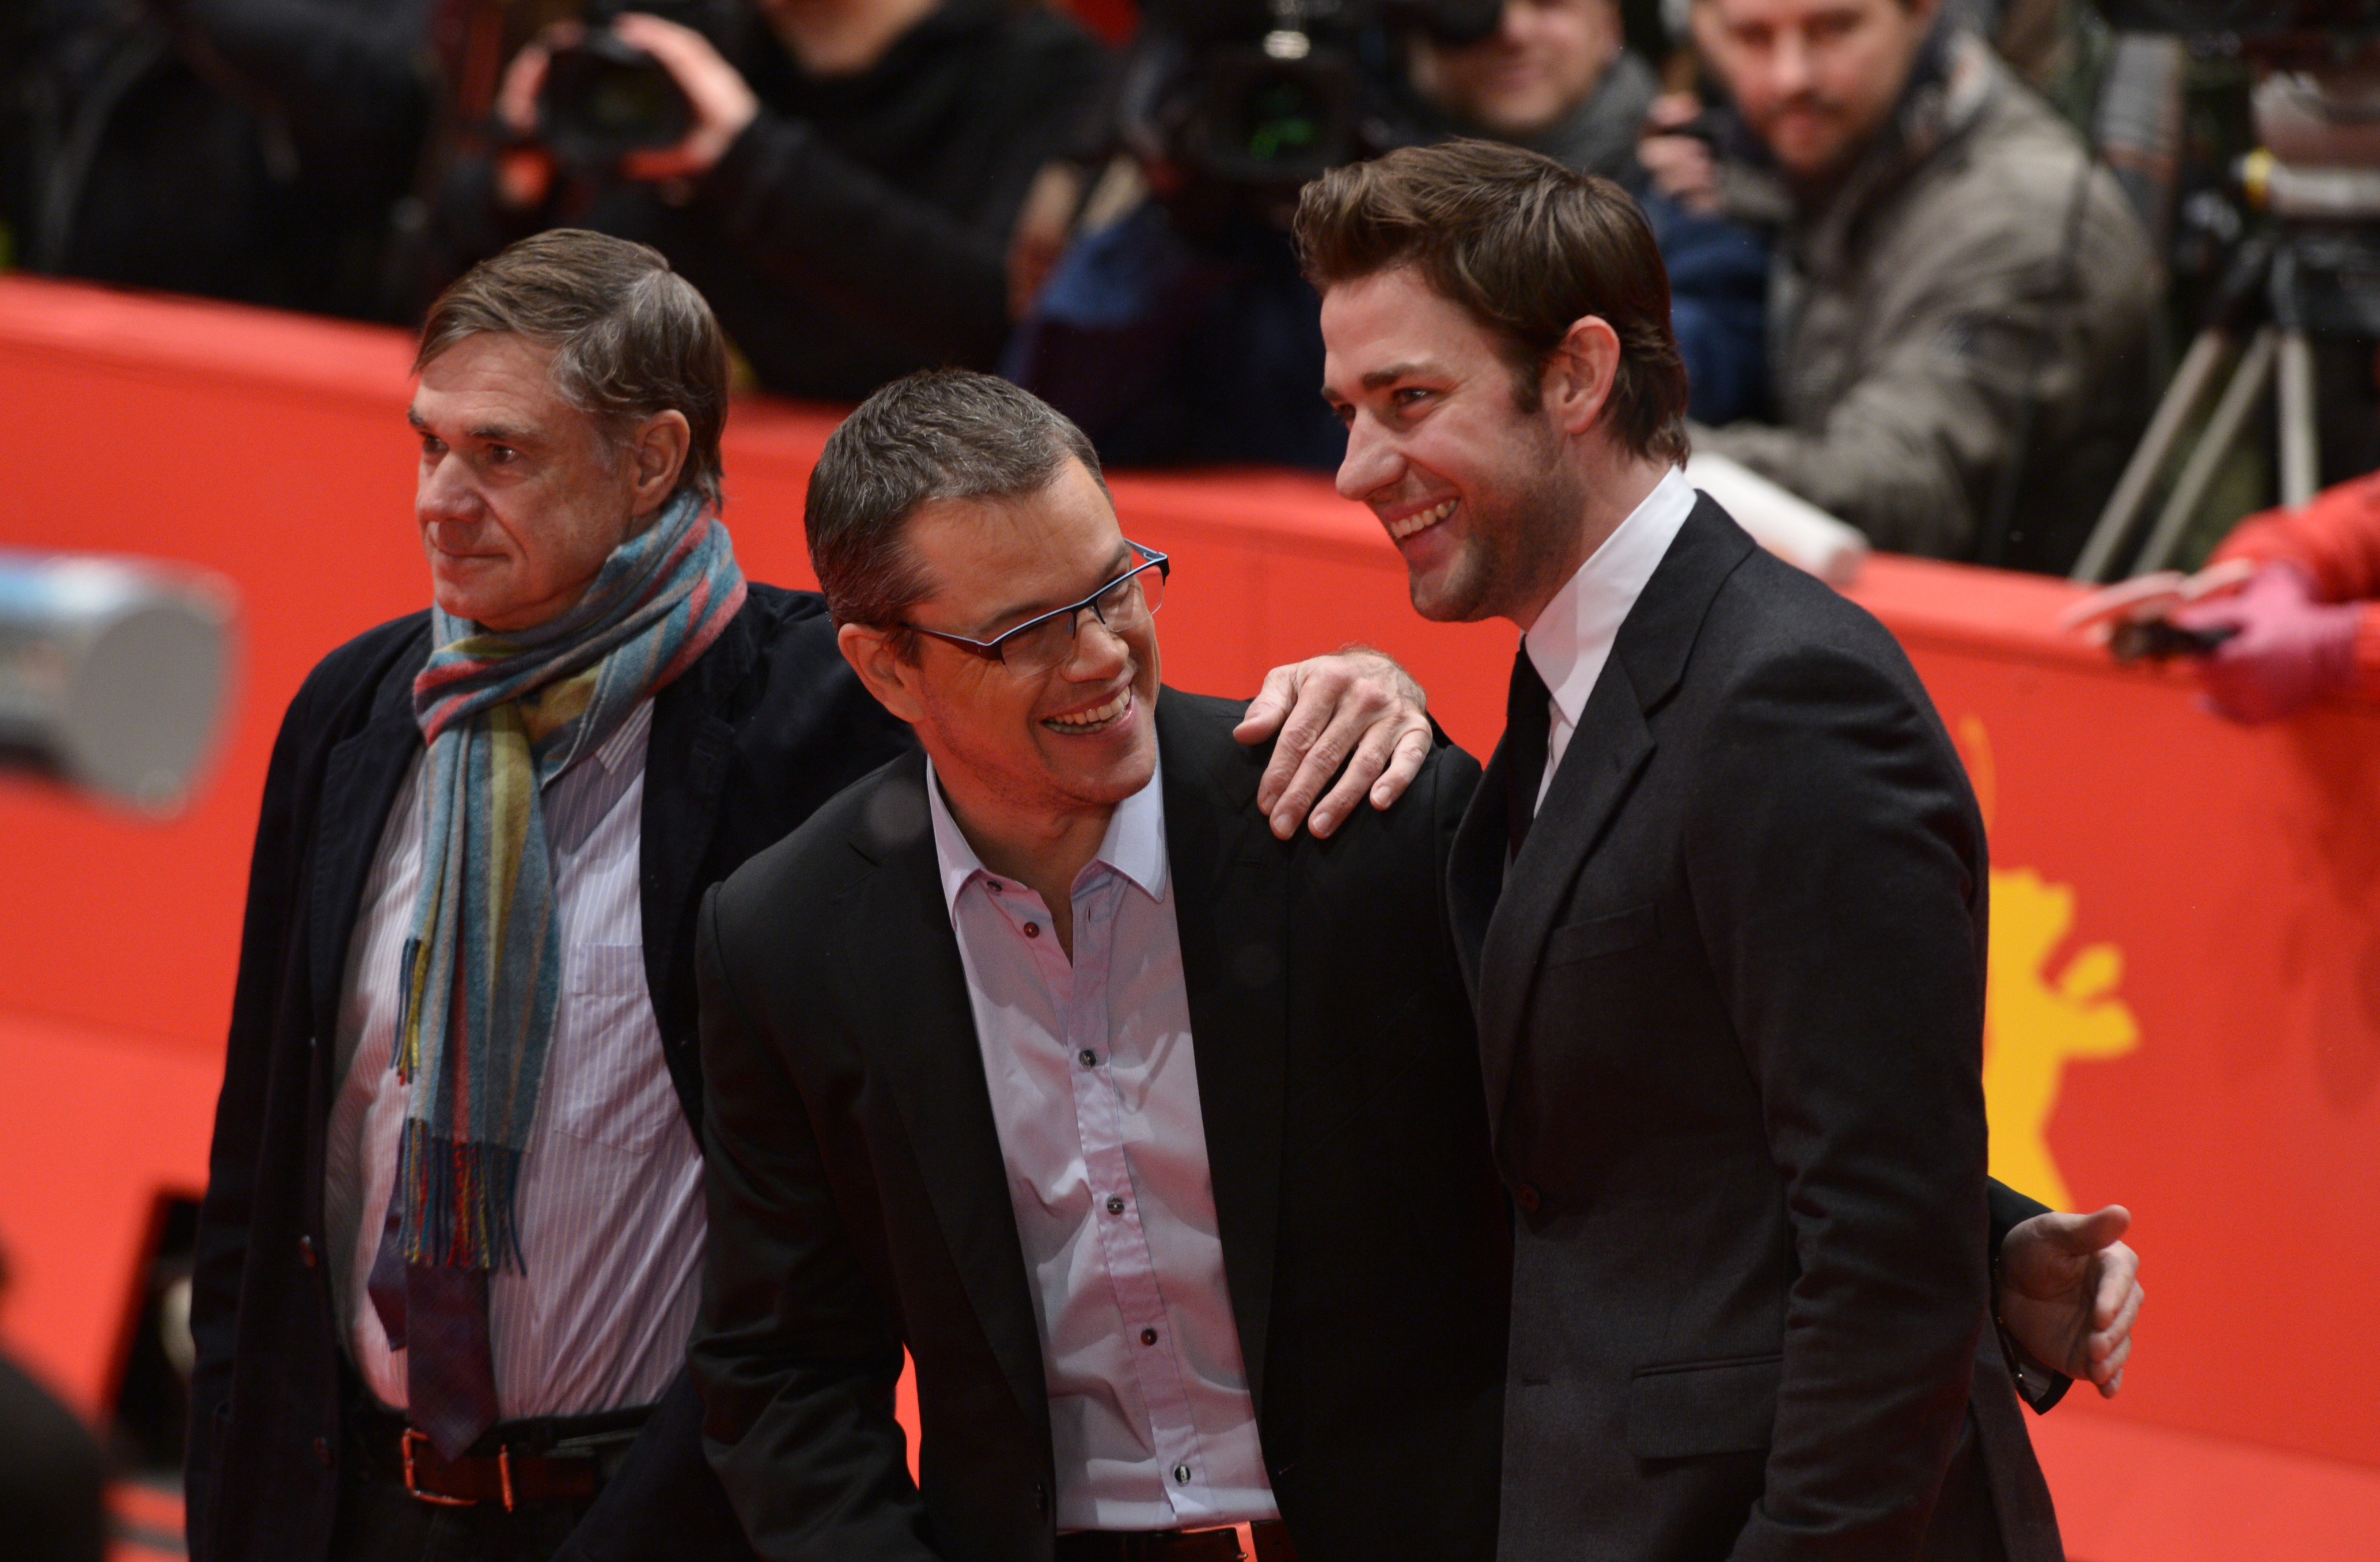 Matt Damon laughed with co-writer John Krasinski as they posed for a picture with Promised Land director Gus Van Sant.